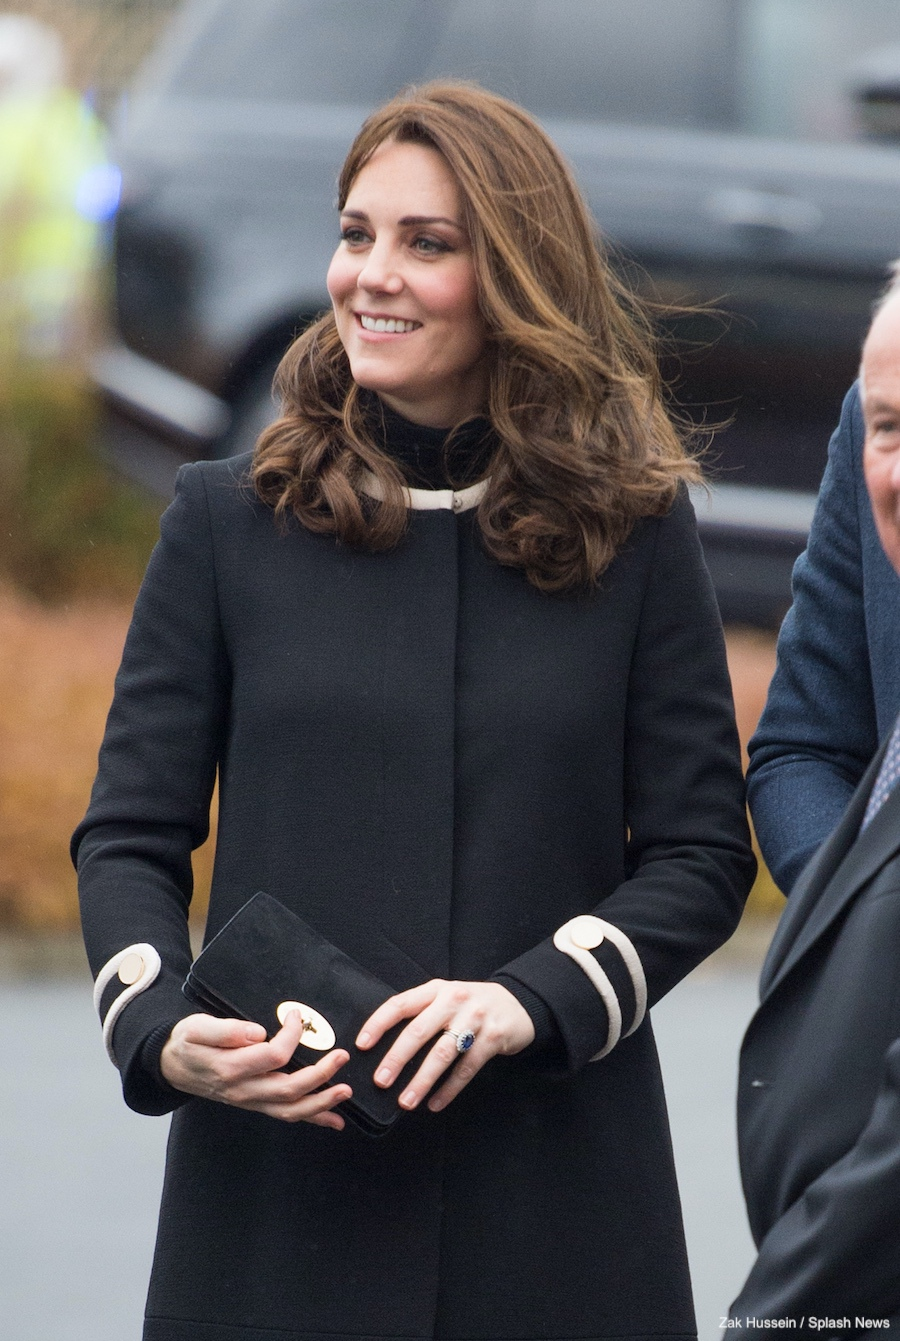 Kate Middleton carrying the Mulberry Bayswater wallet in black suede in Birmingham, England